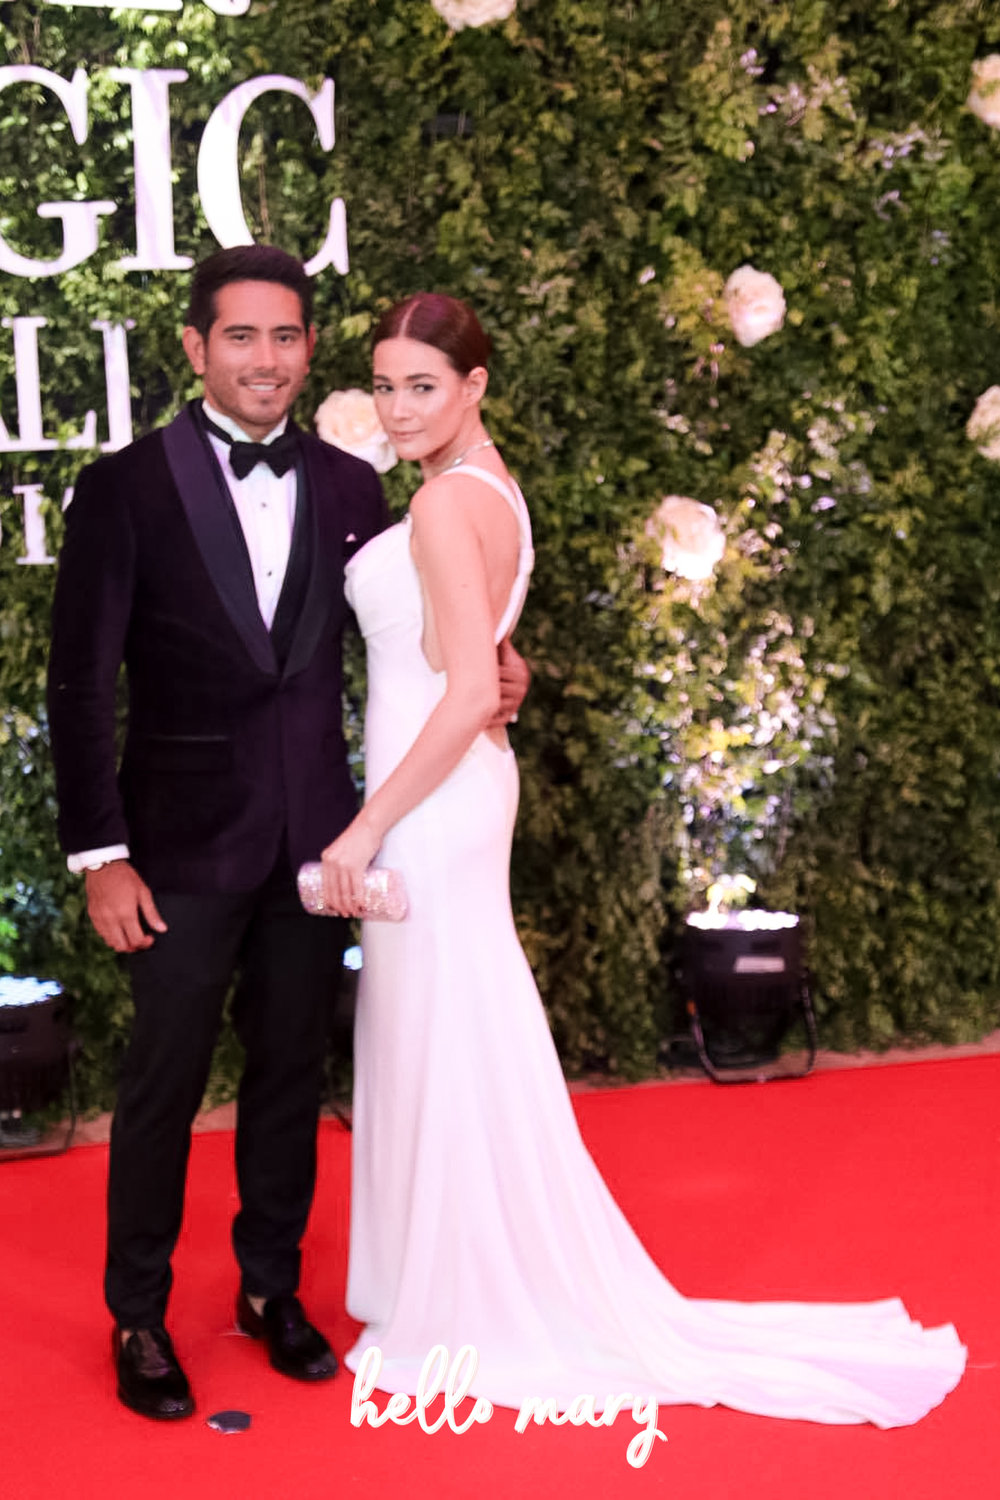 BeaRald - Bea Alonzo and Gerald Anderson. Babe time never looked this good! Hihi, kinikilig pa rin ako sa kanila!